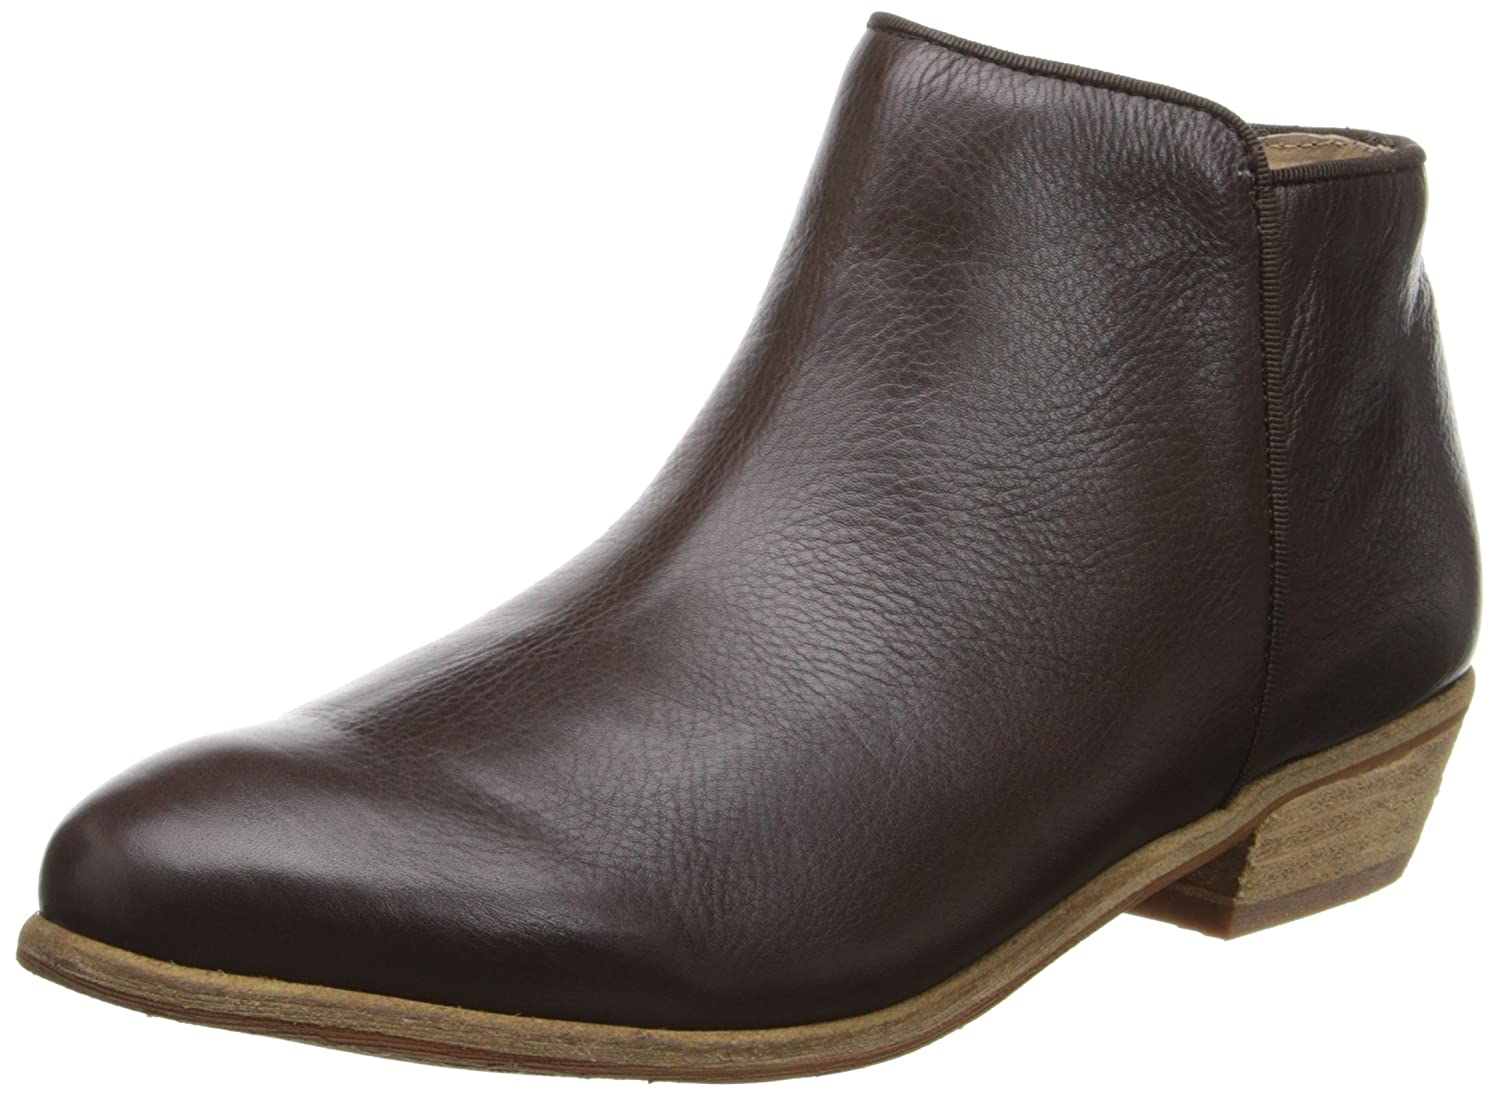 SoftWalk Women's Rocklin Chelsea Boot B00HQNFWU2 8.5 C/D US|Dark Brown